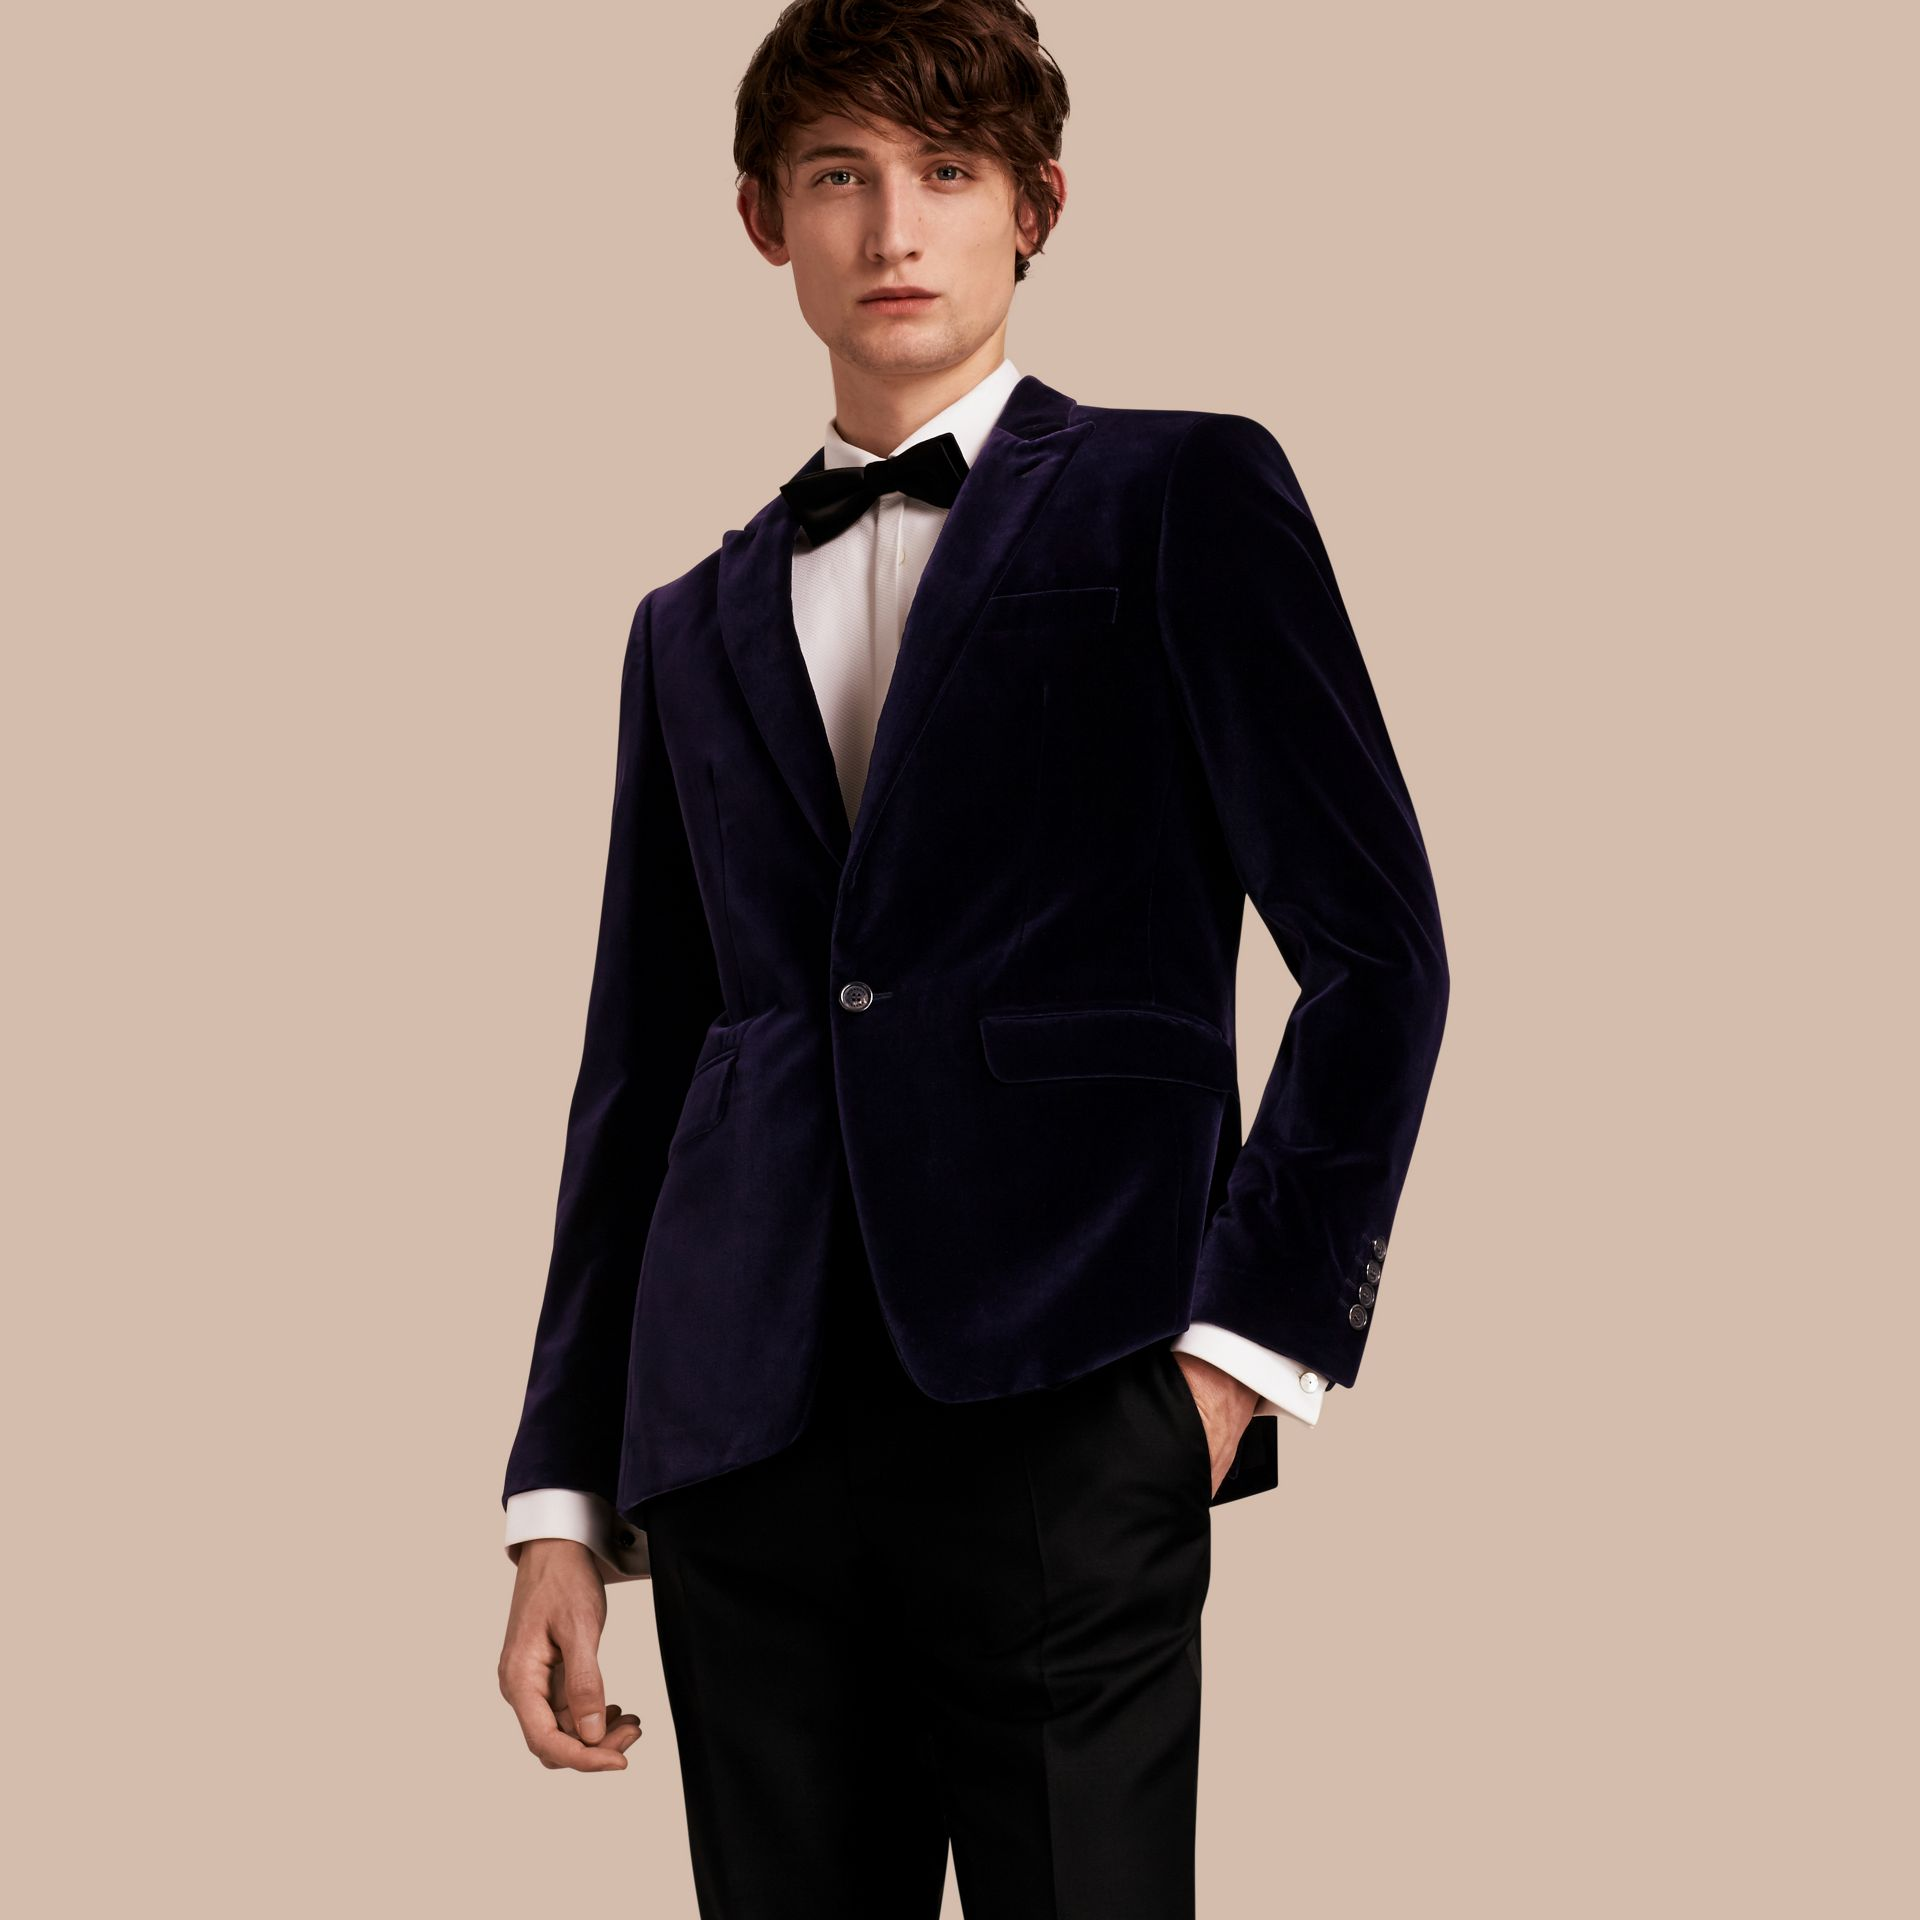 Indigo purple Slim Fit Tailored Velvet Jacket Indigo Purple - gallery image 1